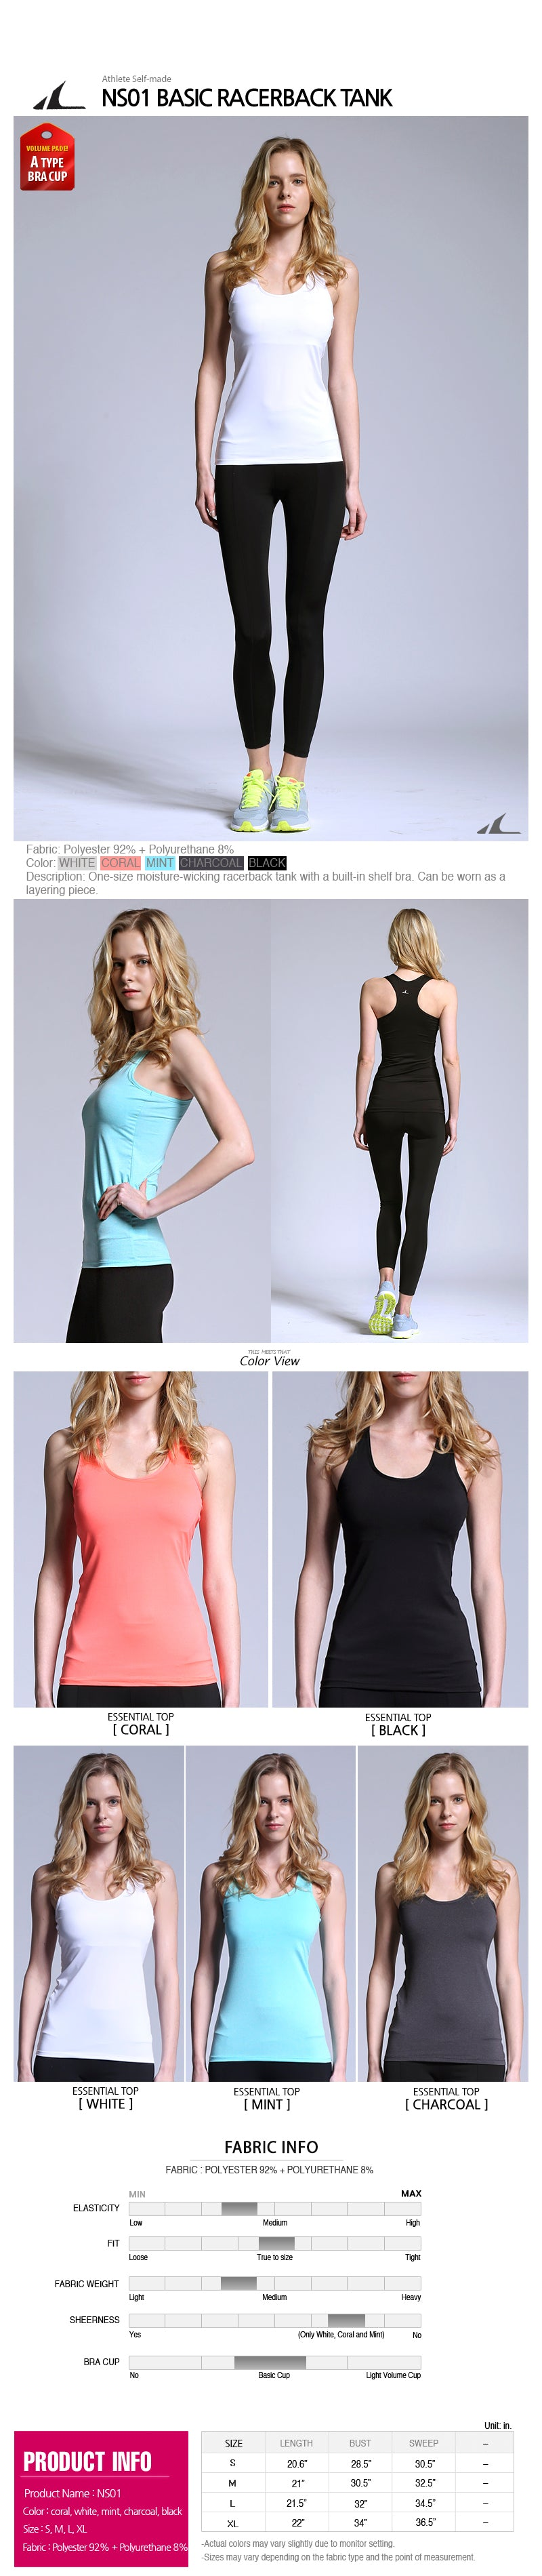 ATHLETE Women's Comfort Tank Top w/ removable pads, Style NS01